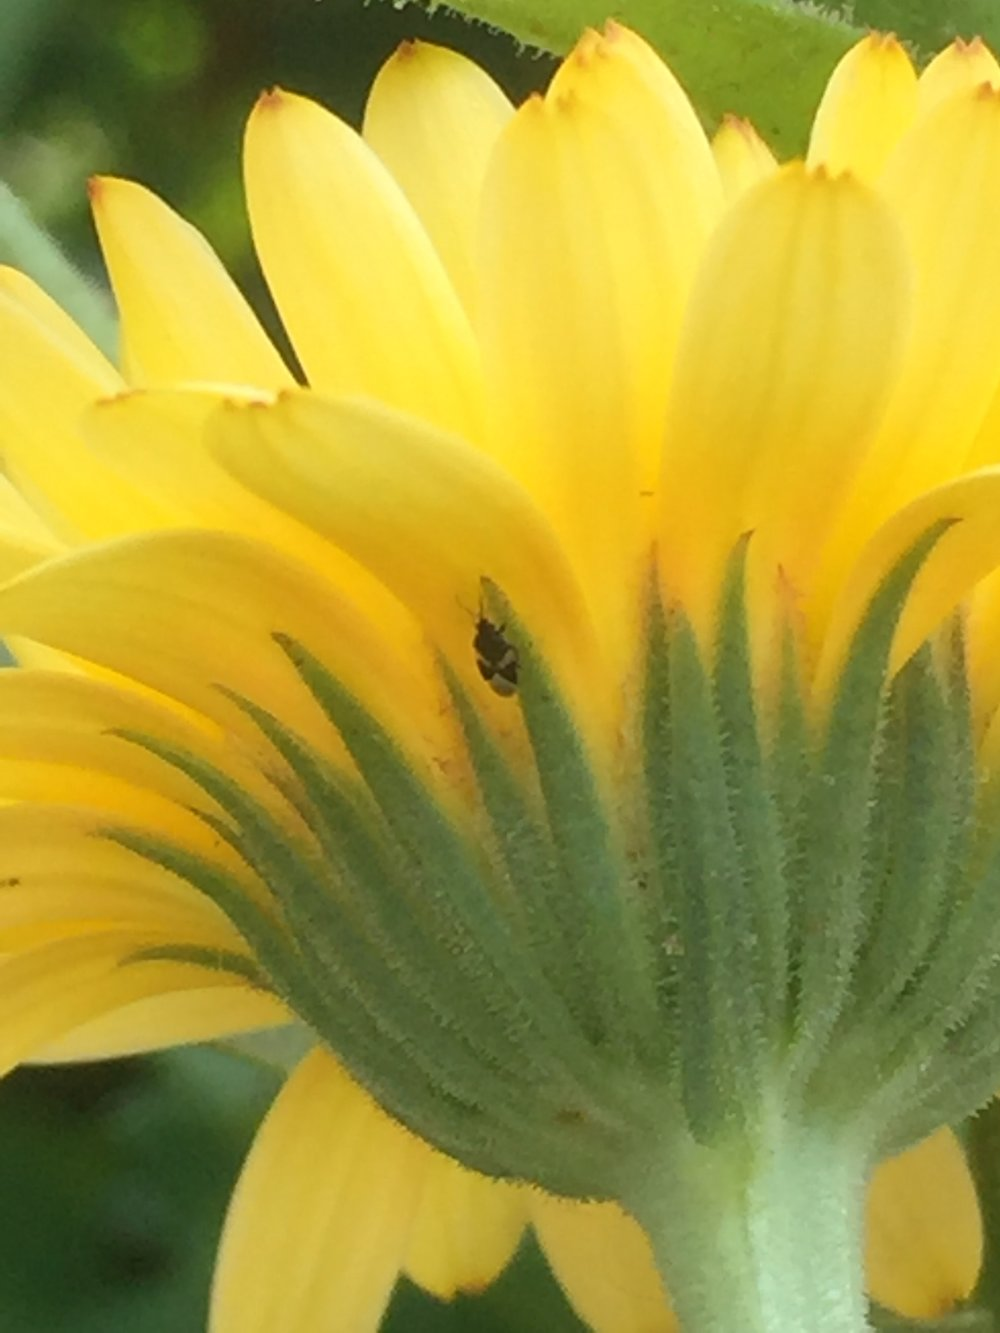 Pirate Bugs (Orius insidious) Love Calendula Flowers Photo by: Cannabis Horticultural Association